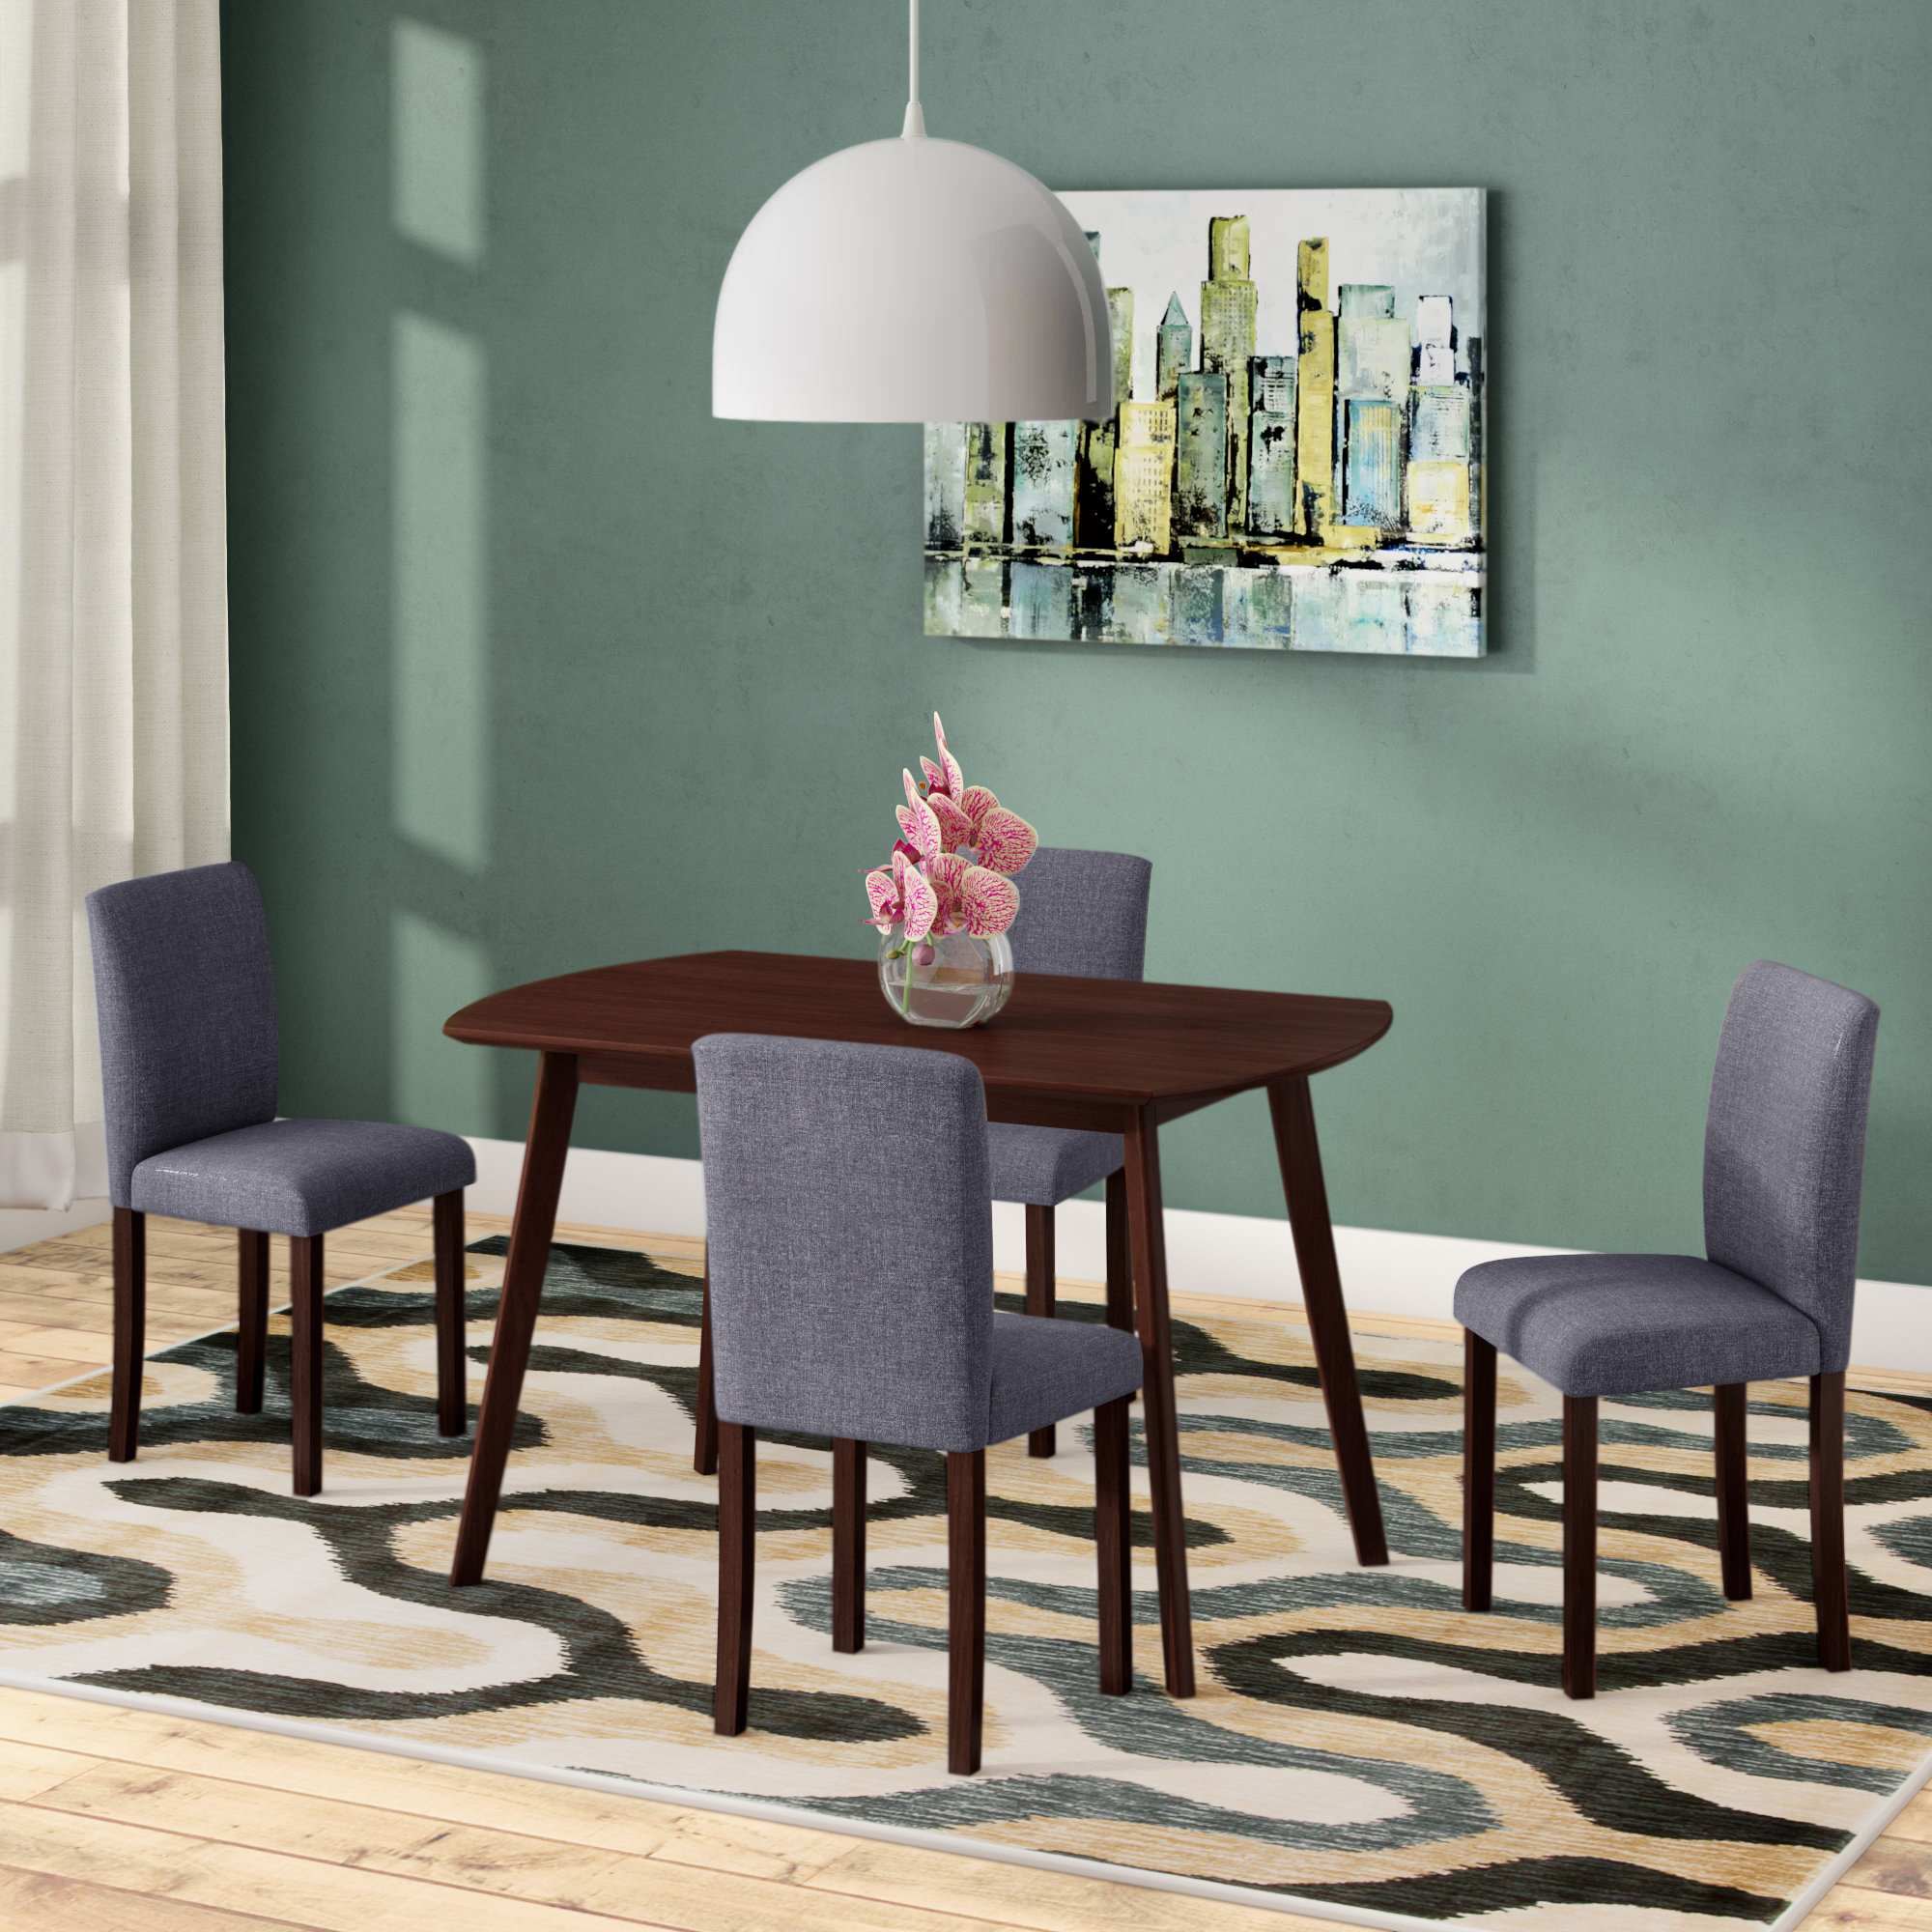 Lightle 5 Piece Breakfast Nook Dining Sets In Fashionable Details About Ebern Designs Errico 5 Piece Solid Wood Dining Set (View 5 of 20)